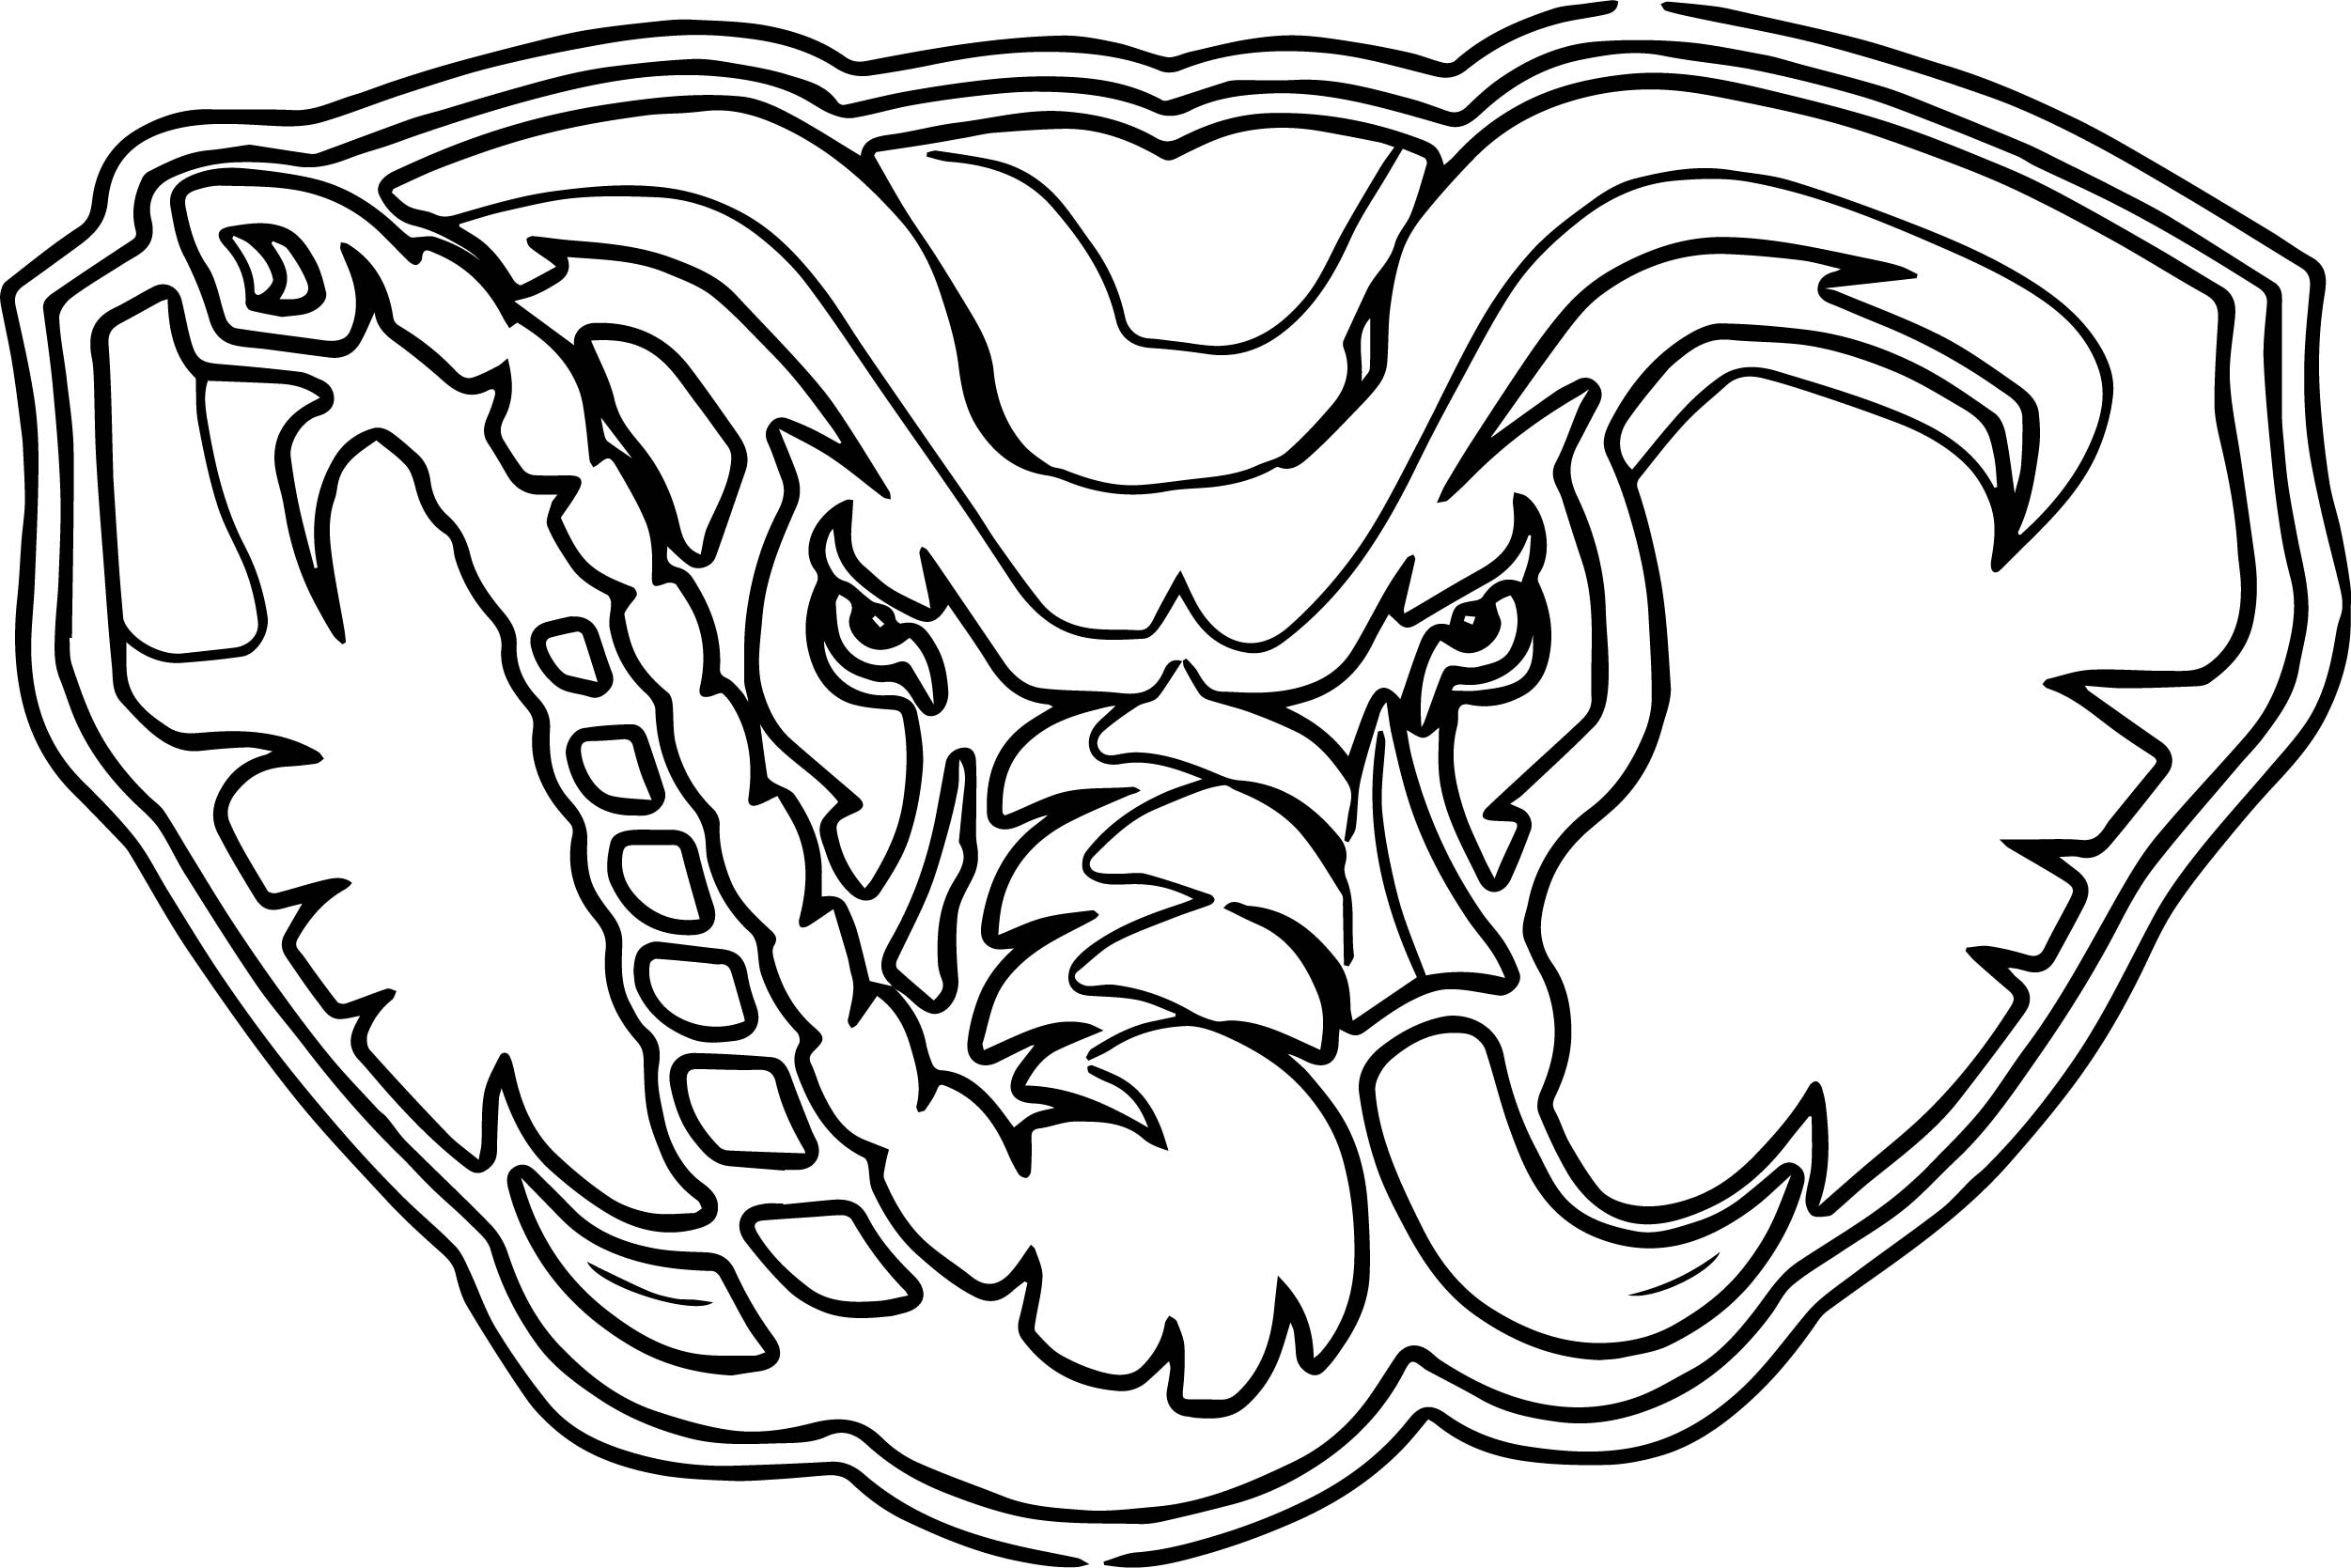 2502x1669 Alabama Elephant Face Outline Coloring Page Wecoloringpage